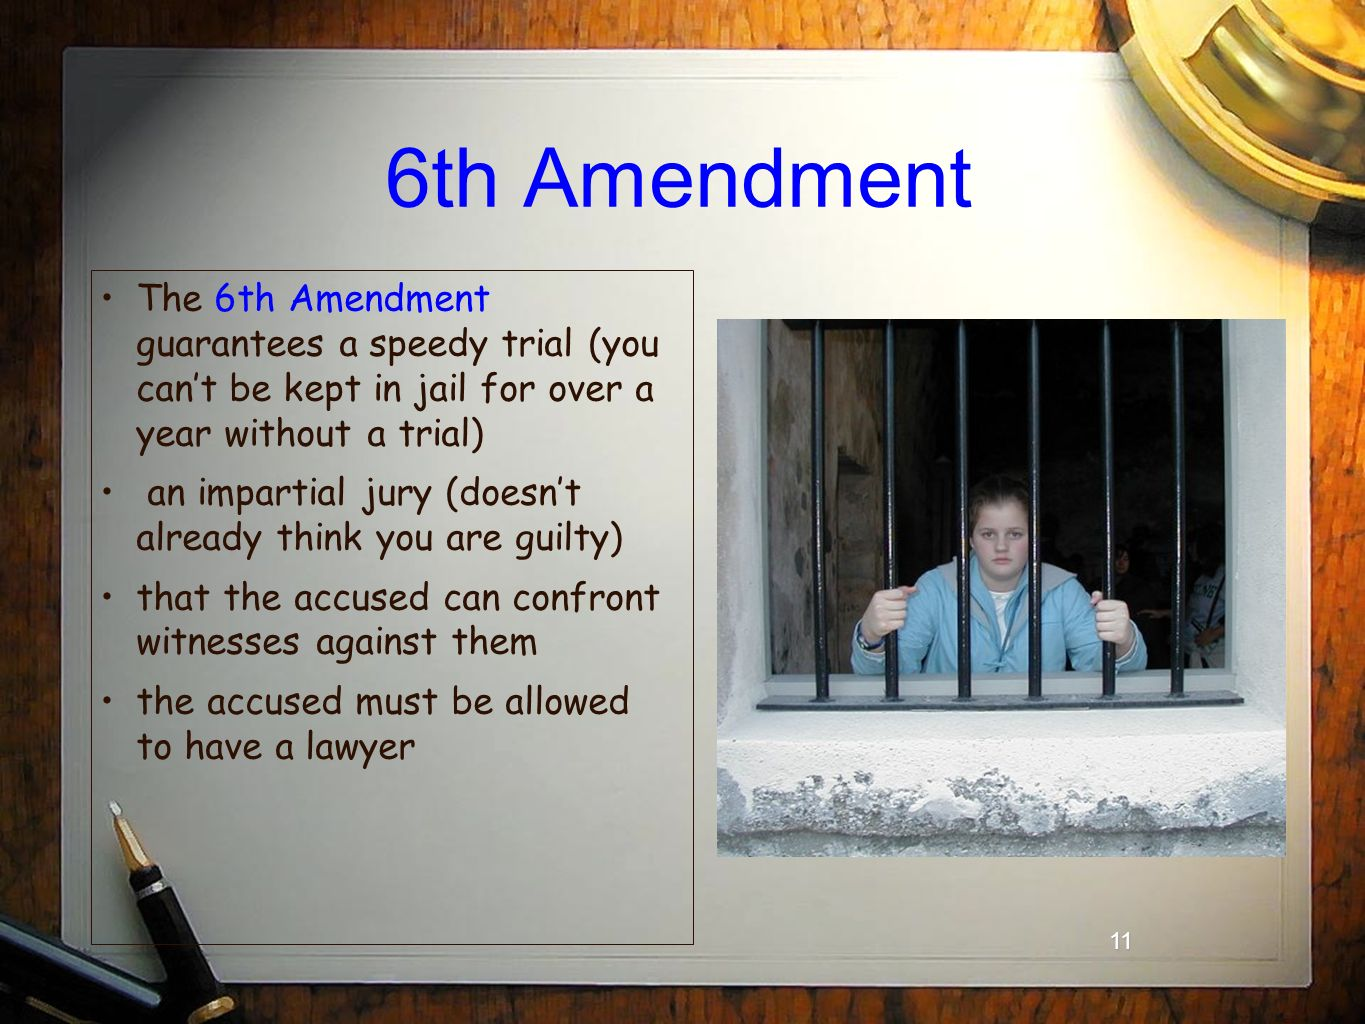 11 6th Amendment The 6th Amendment guarantees a speedy trial (you can't be kept in jail for over a year without a trial) an impartial jury (doesn't already think you are guilty) that the accused can confront witnesses against them the accused must be allowed to have a lawyer